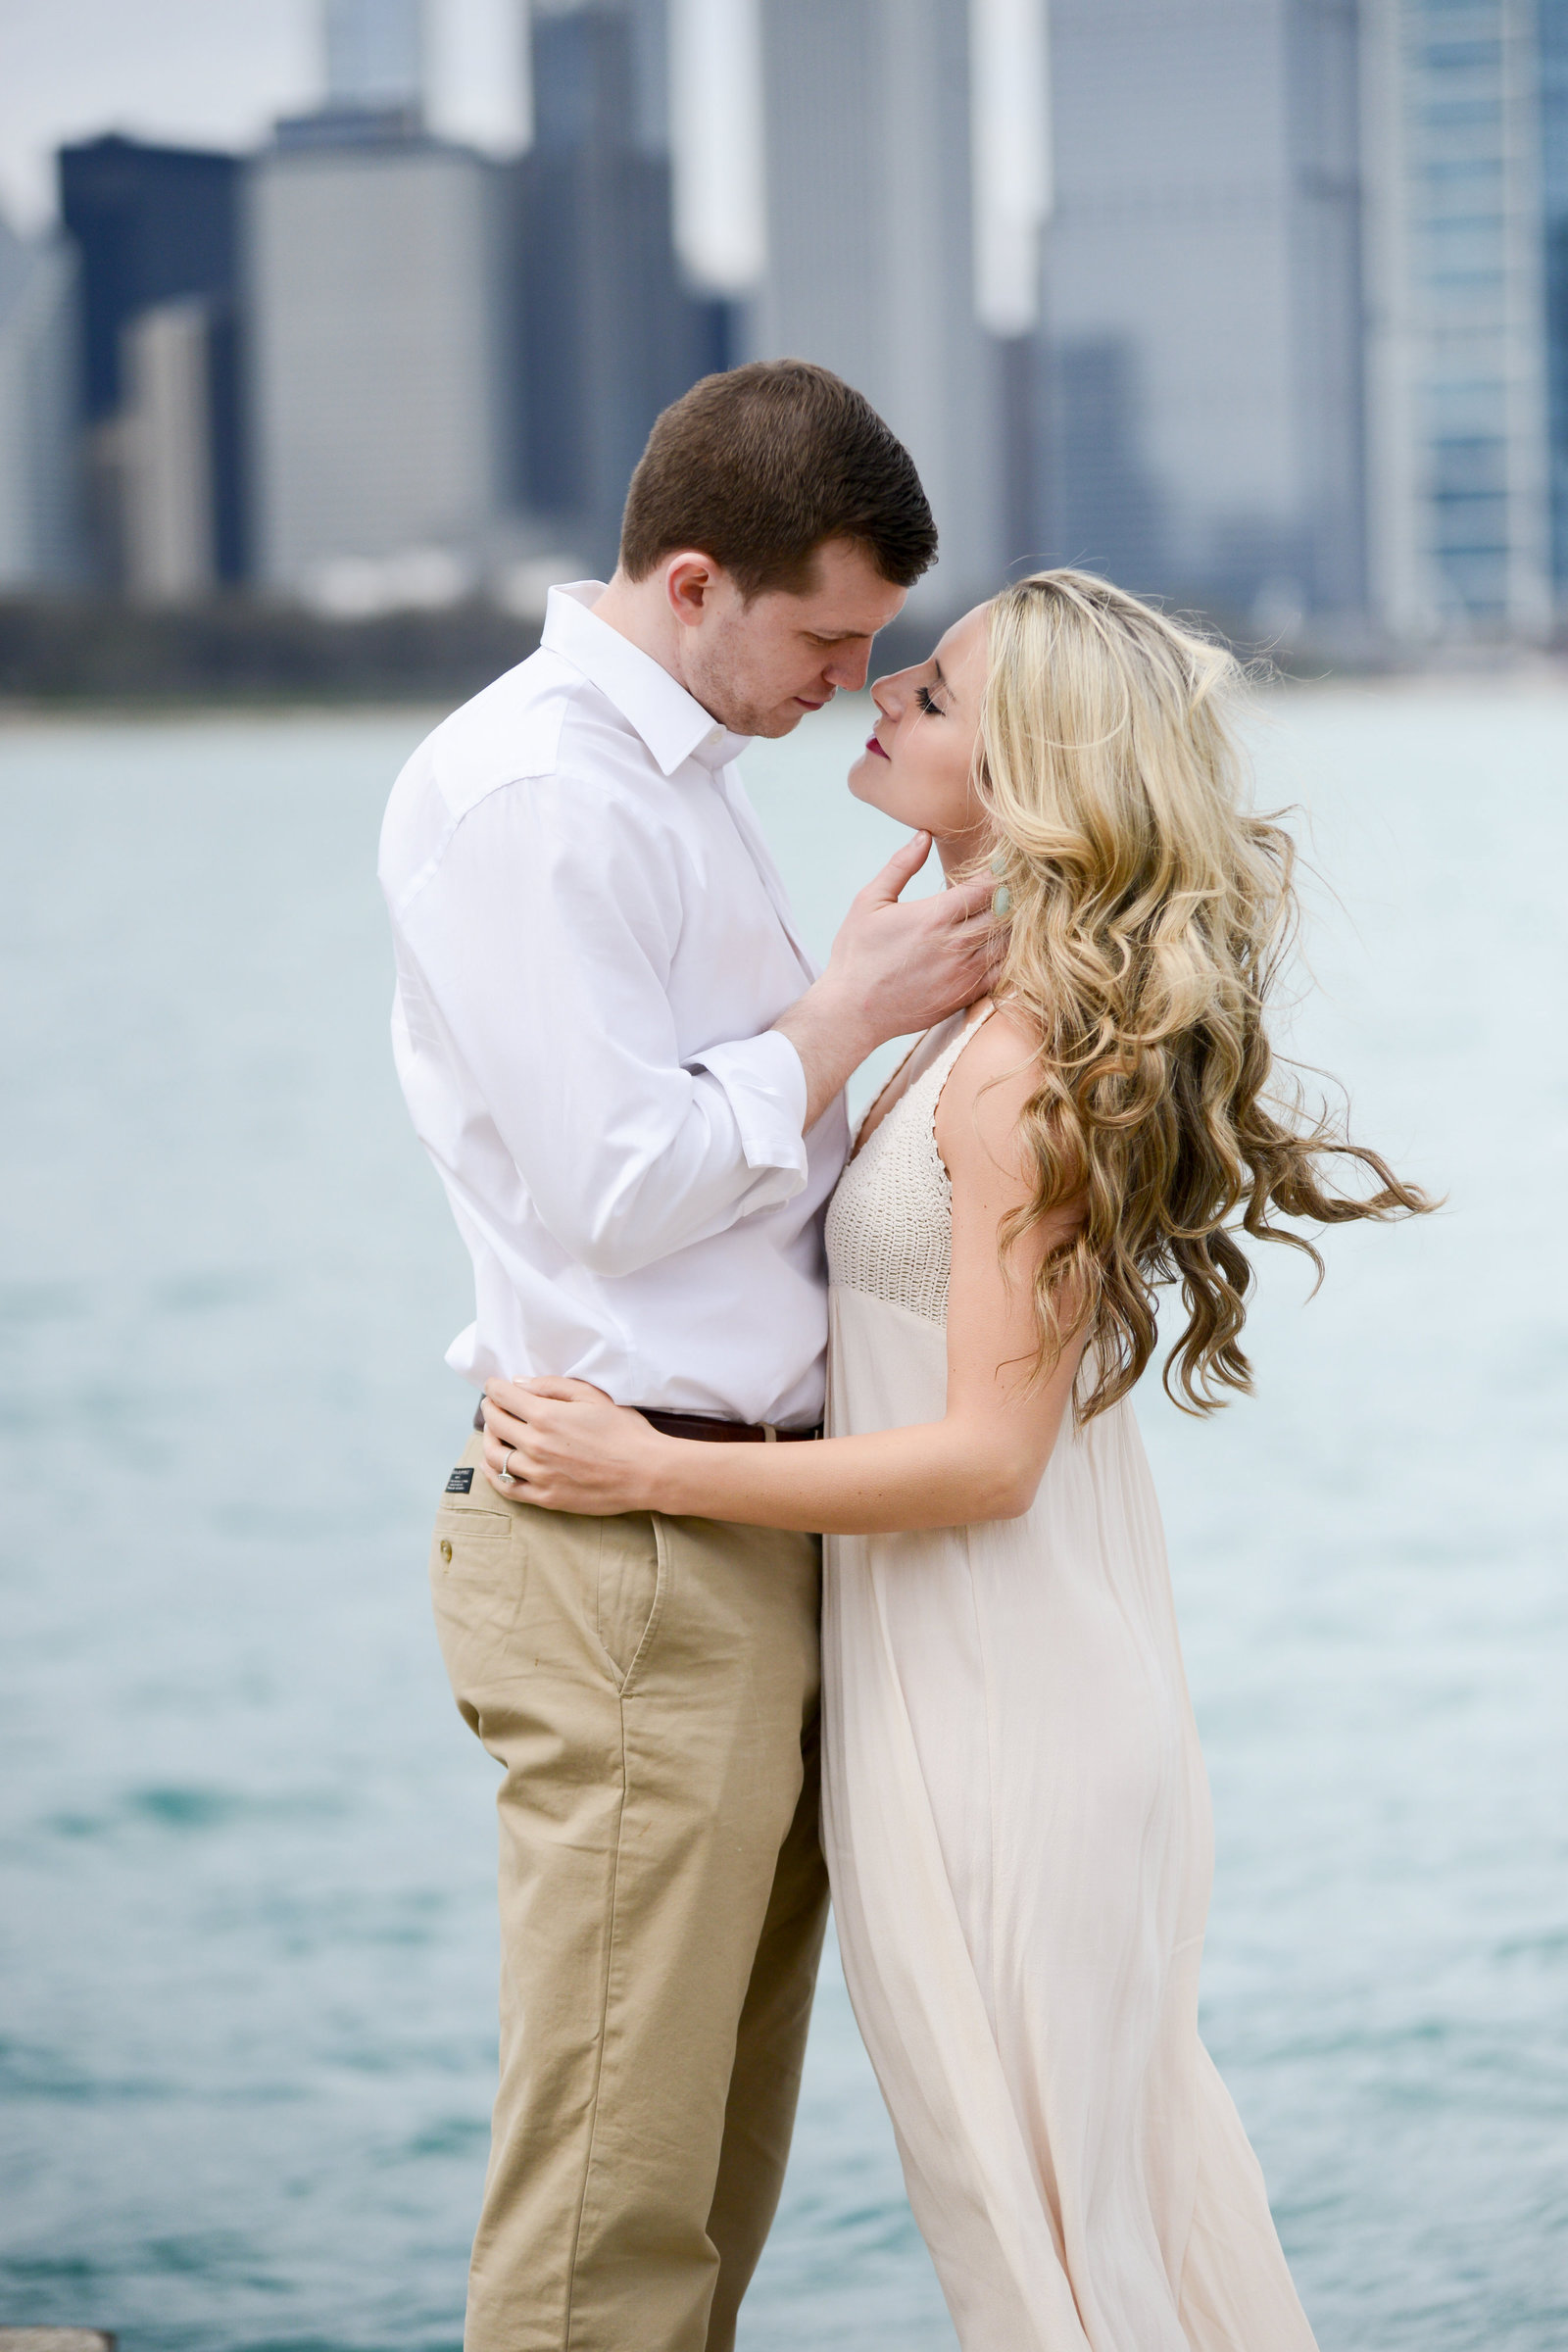 Chicago engagement photo by Sara Ackermann